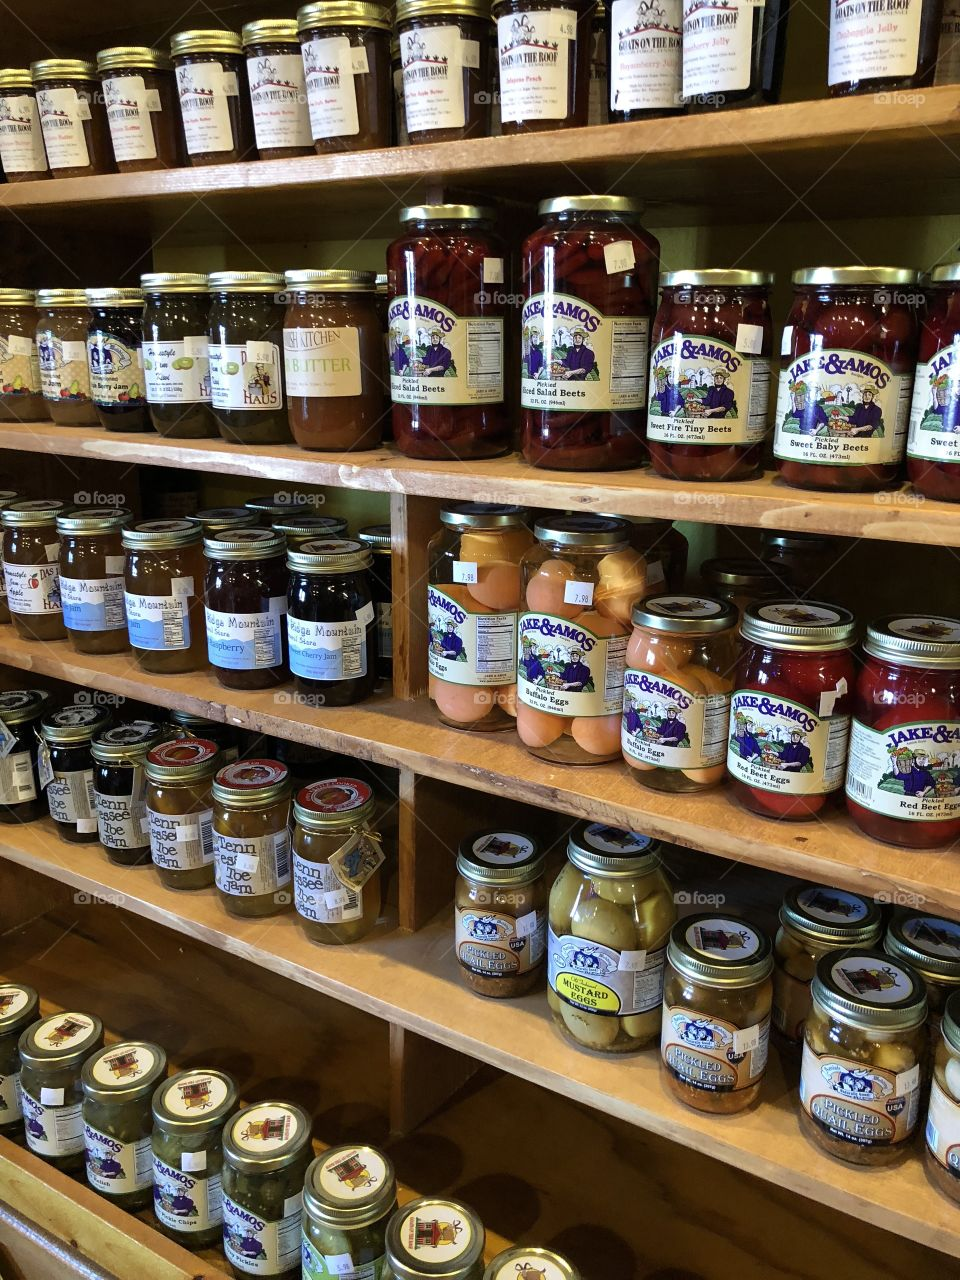 Many jars filled with preserves on shelves in an old store.